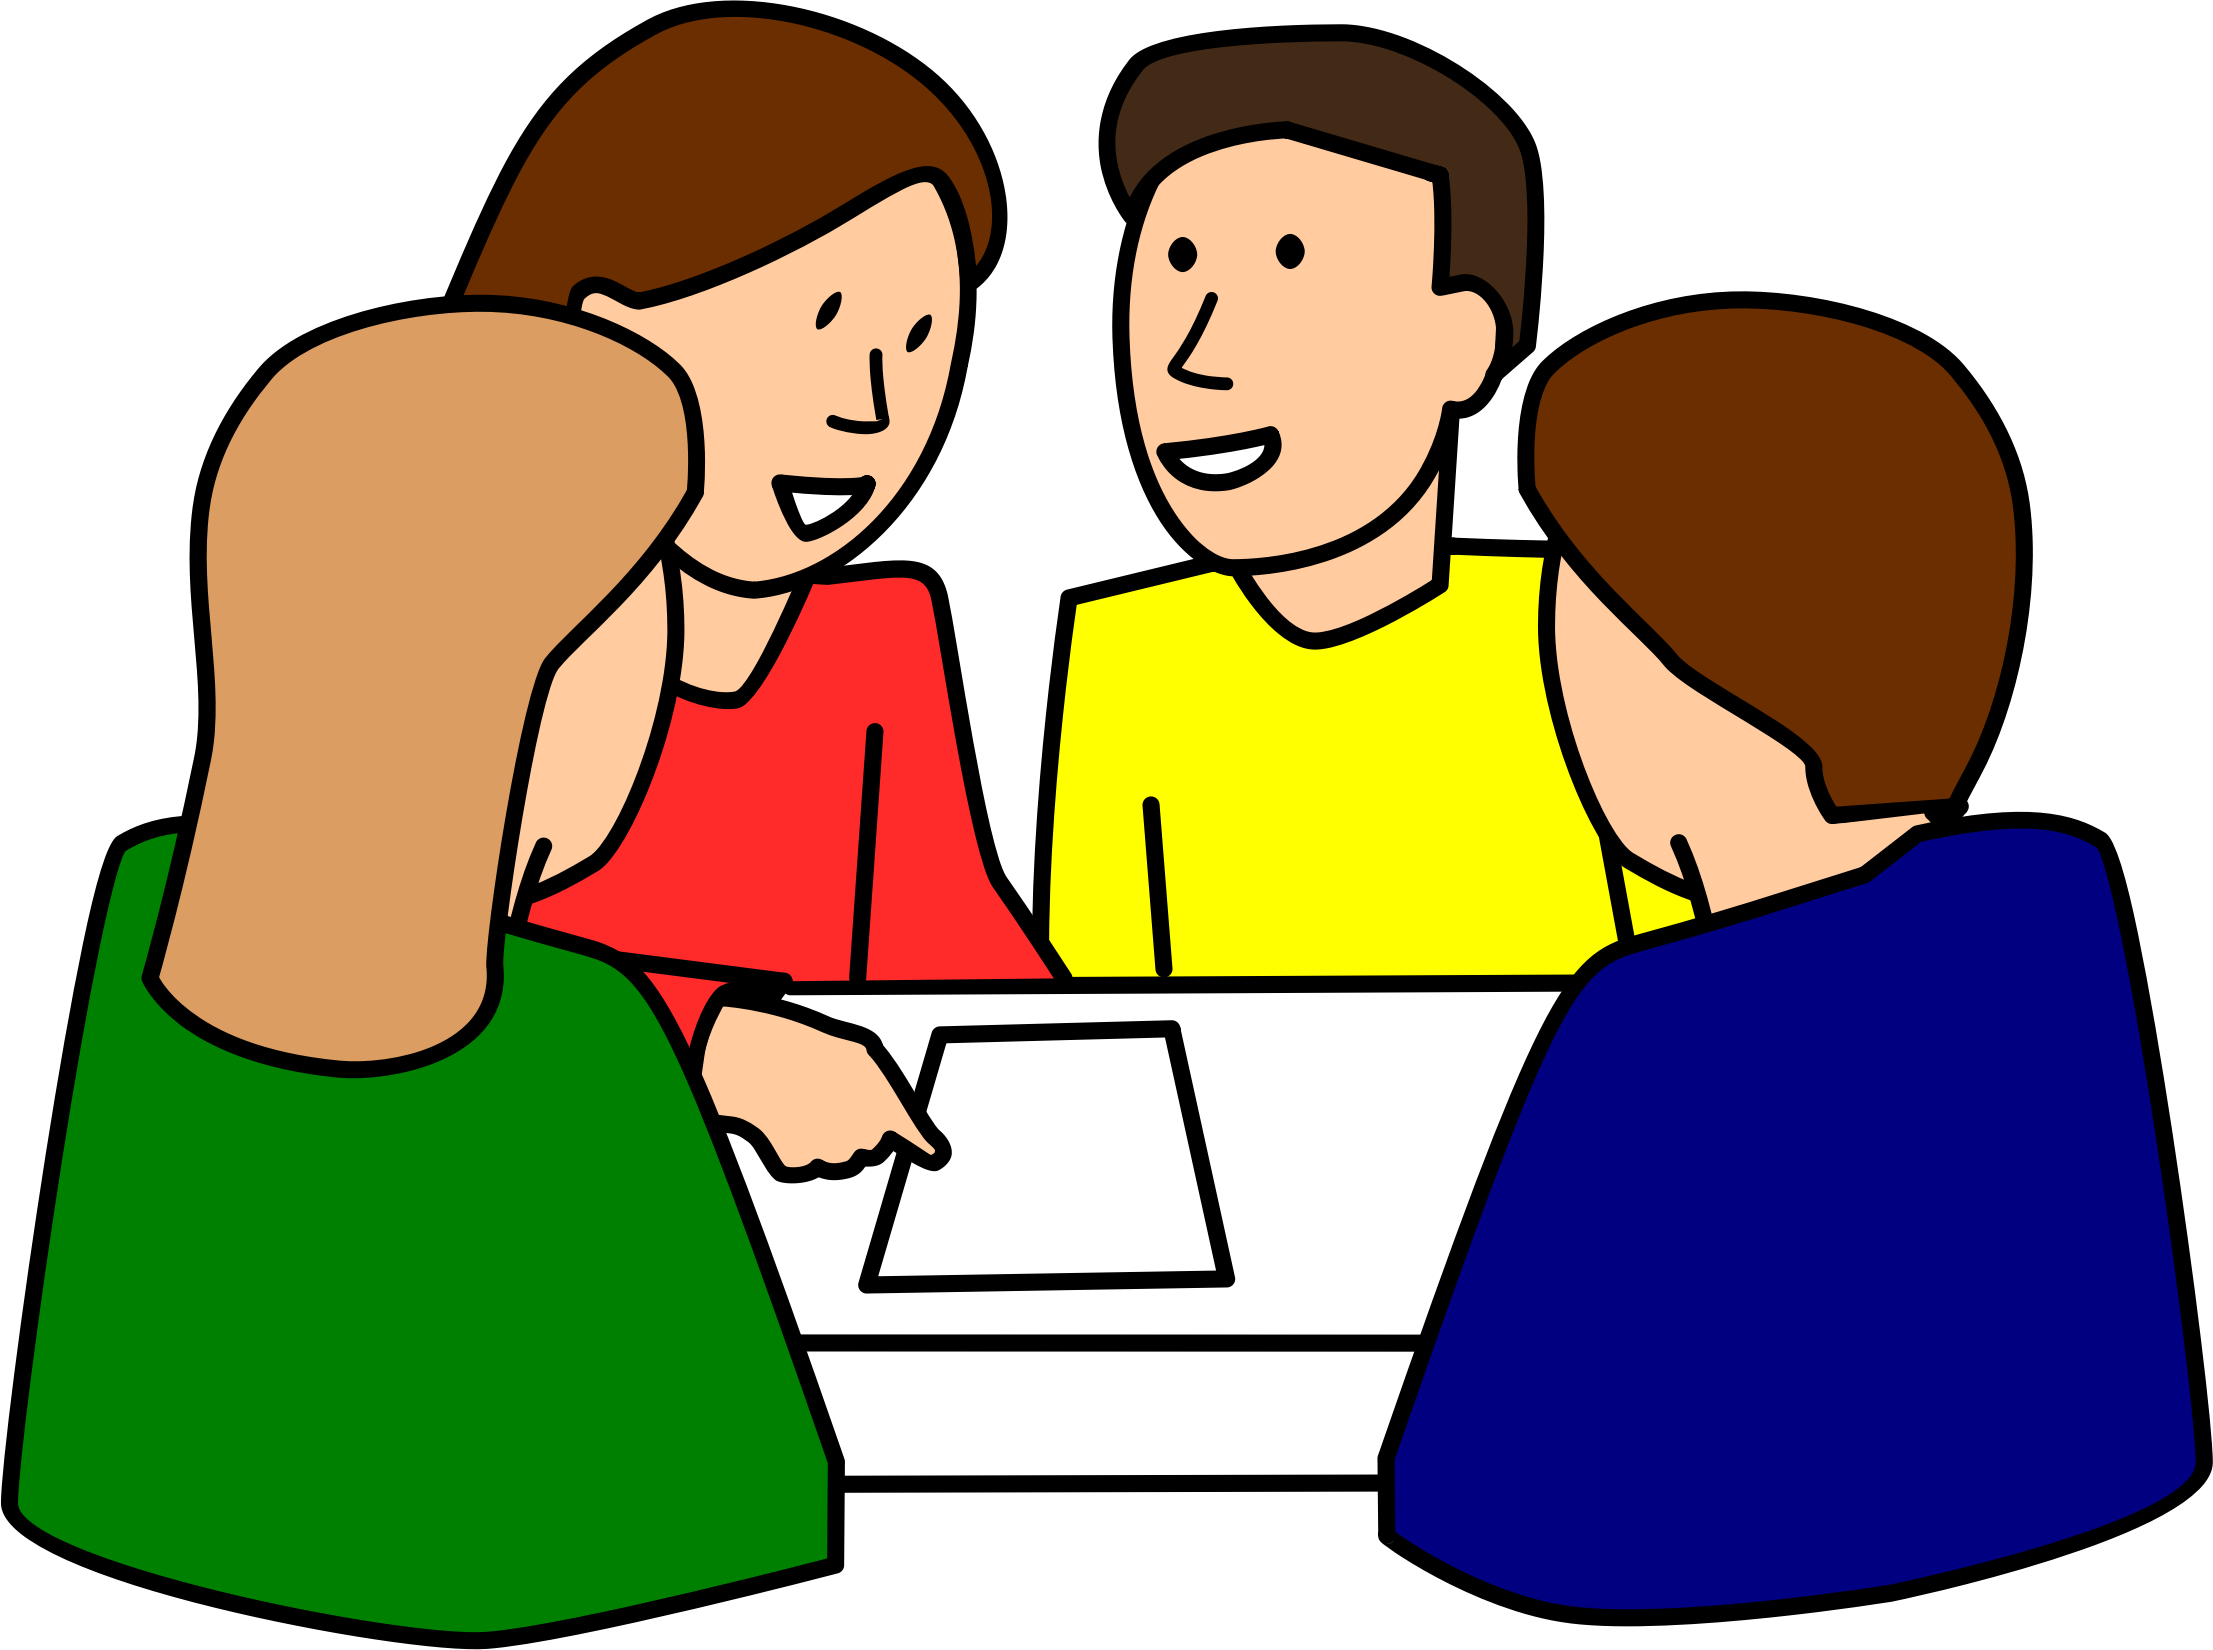 Student working students working in groups clipart